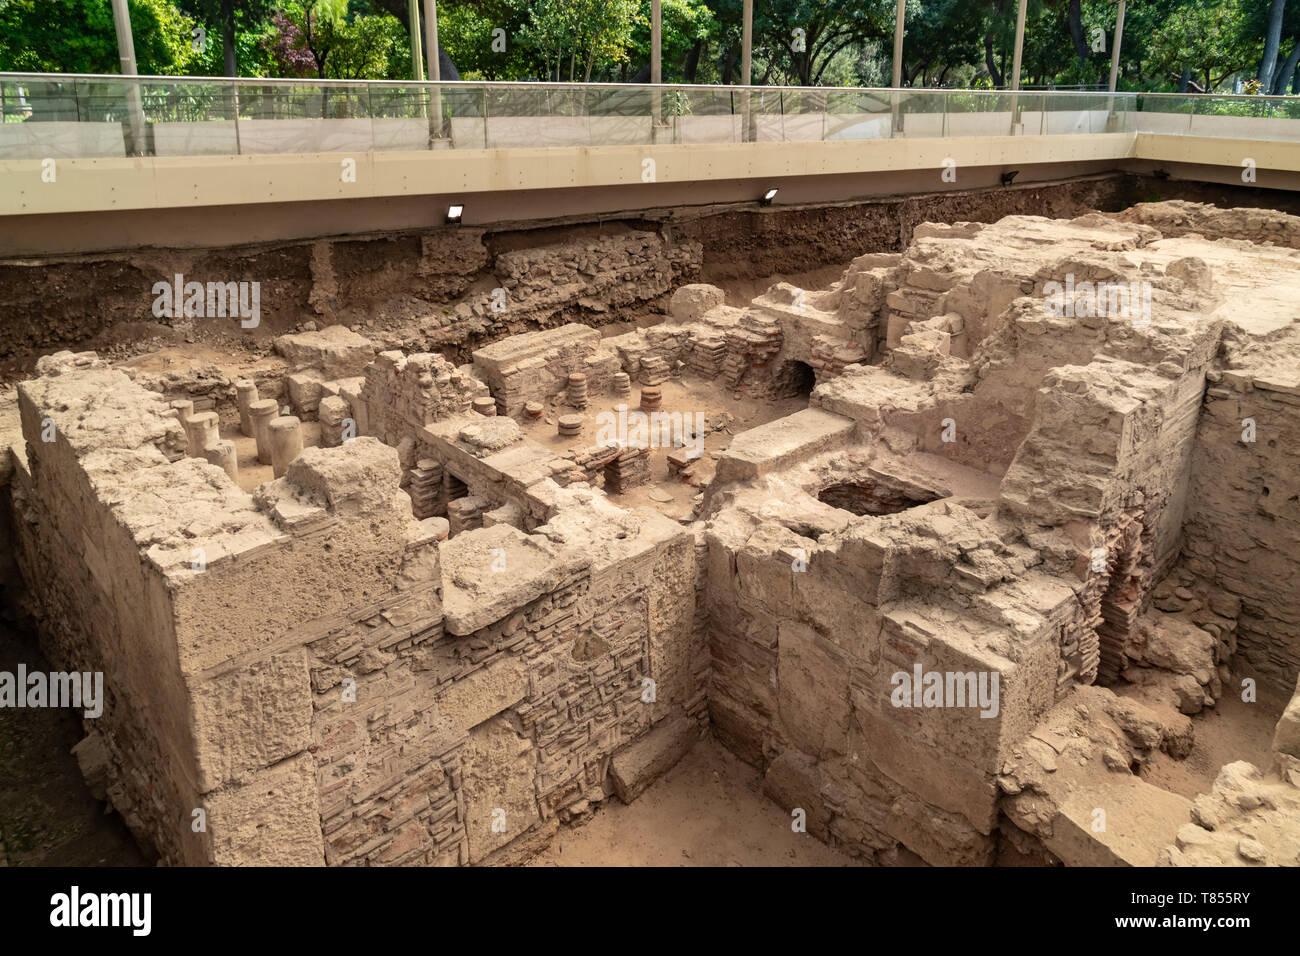 Third Ephorate of Athens Antiquities during the reign of emperor Hadrian.Excavated archaeological site of a roman bath house in Athens, Greece - Stock Image